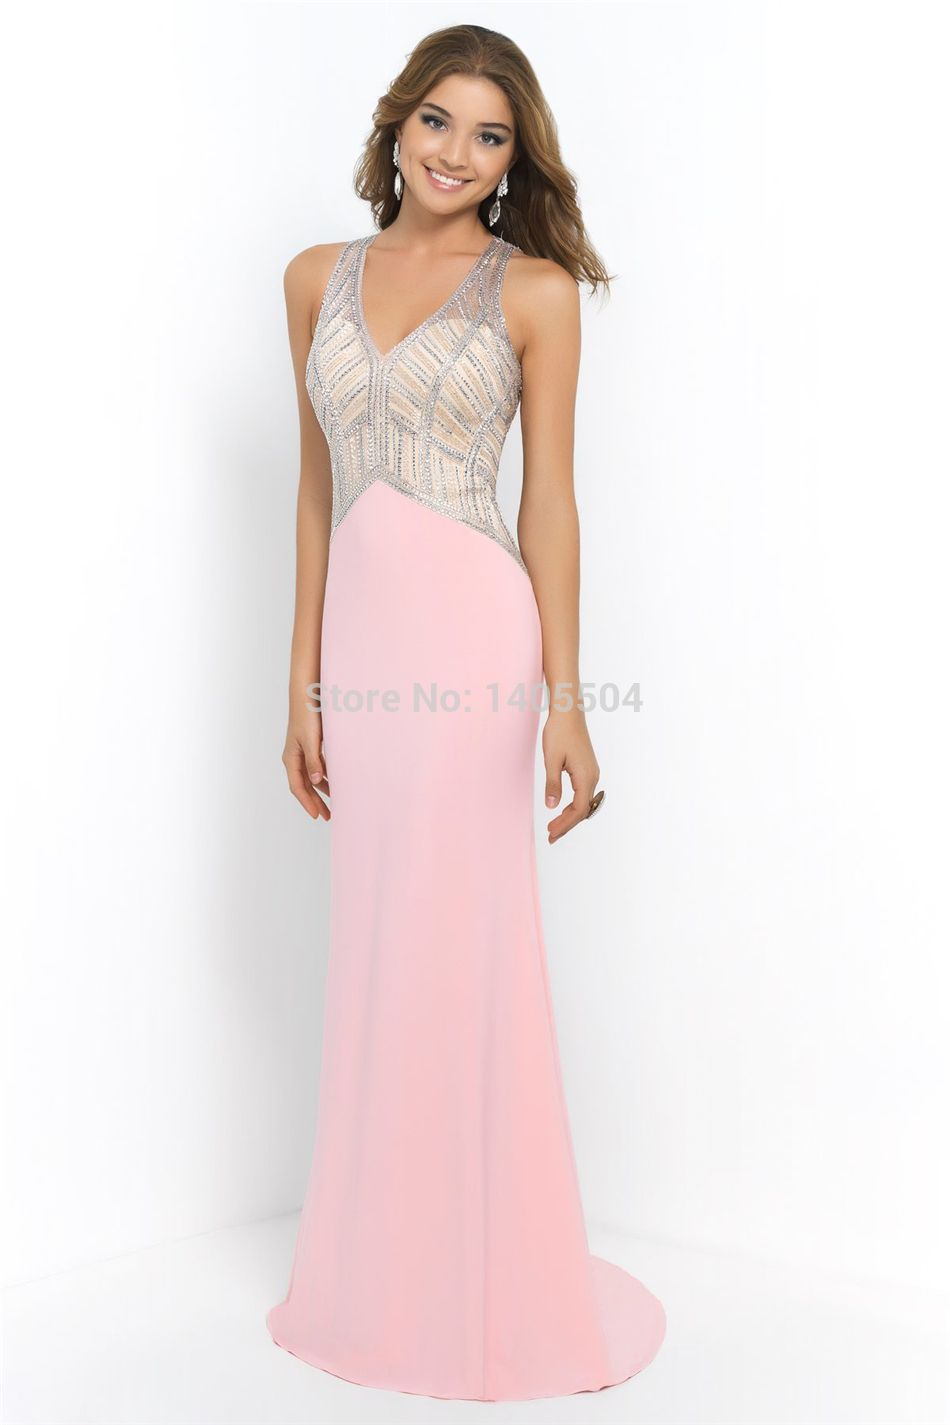 2015 Arrival sheer Prom Gowns crystals See through Party Dresses ...